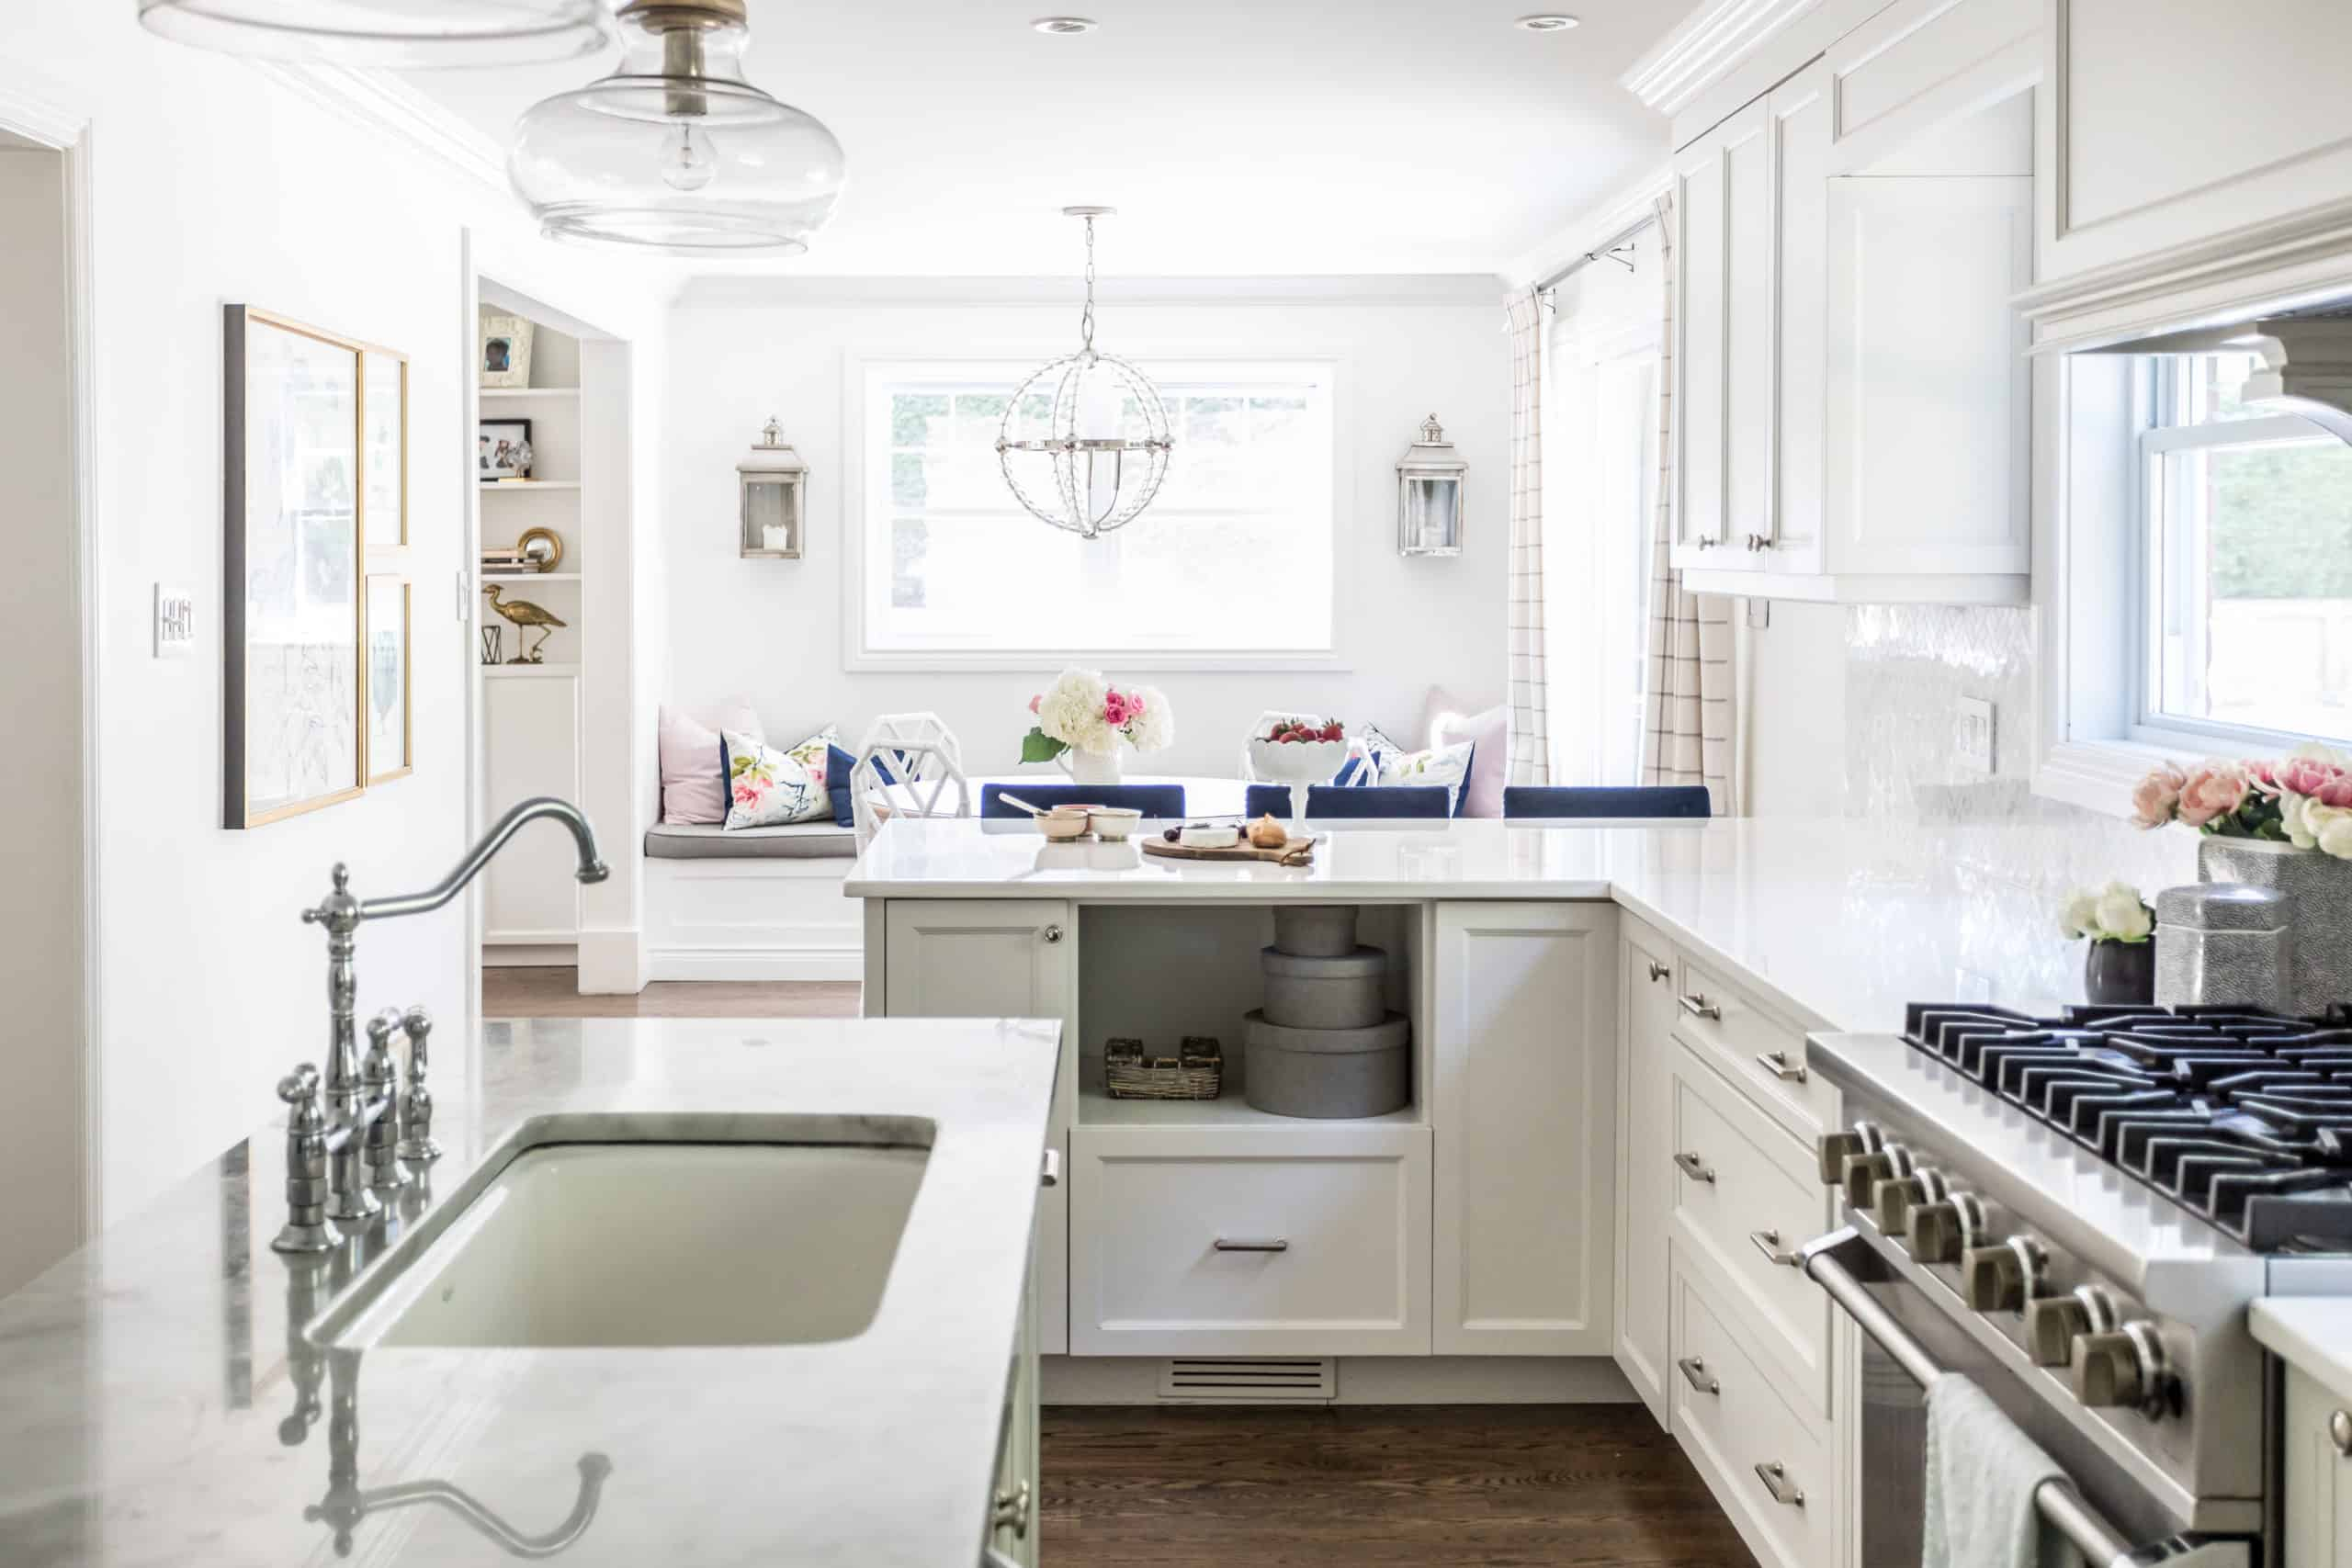 White kitchen with a dining room next to it